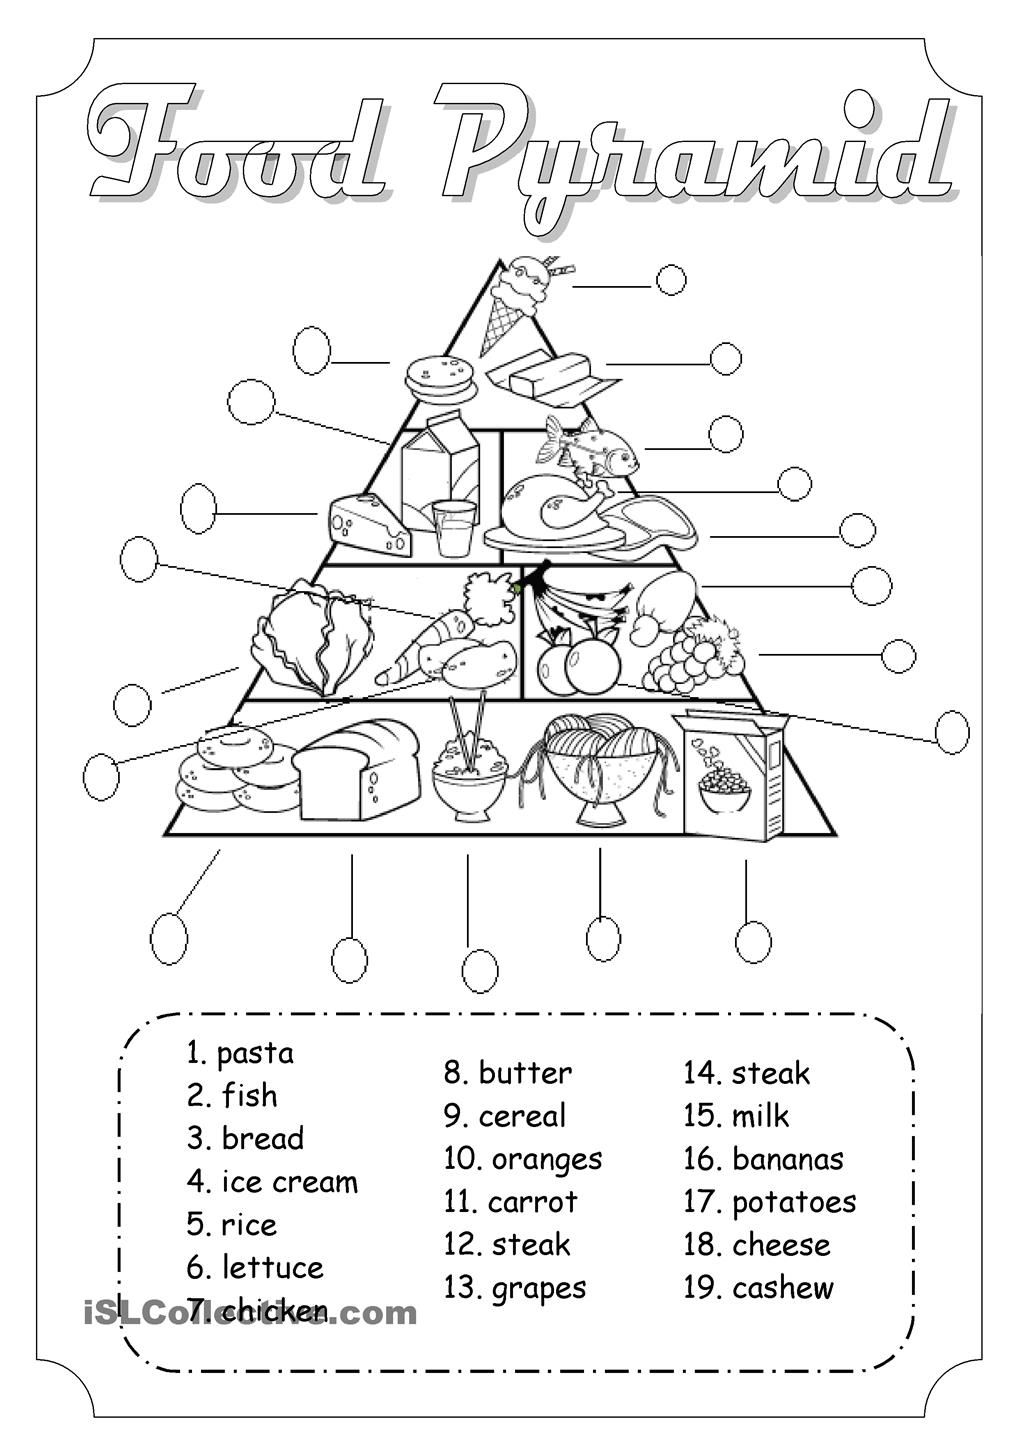 Food Pyramid With Images Food Pyramid Pyramids